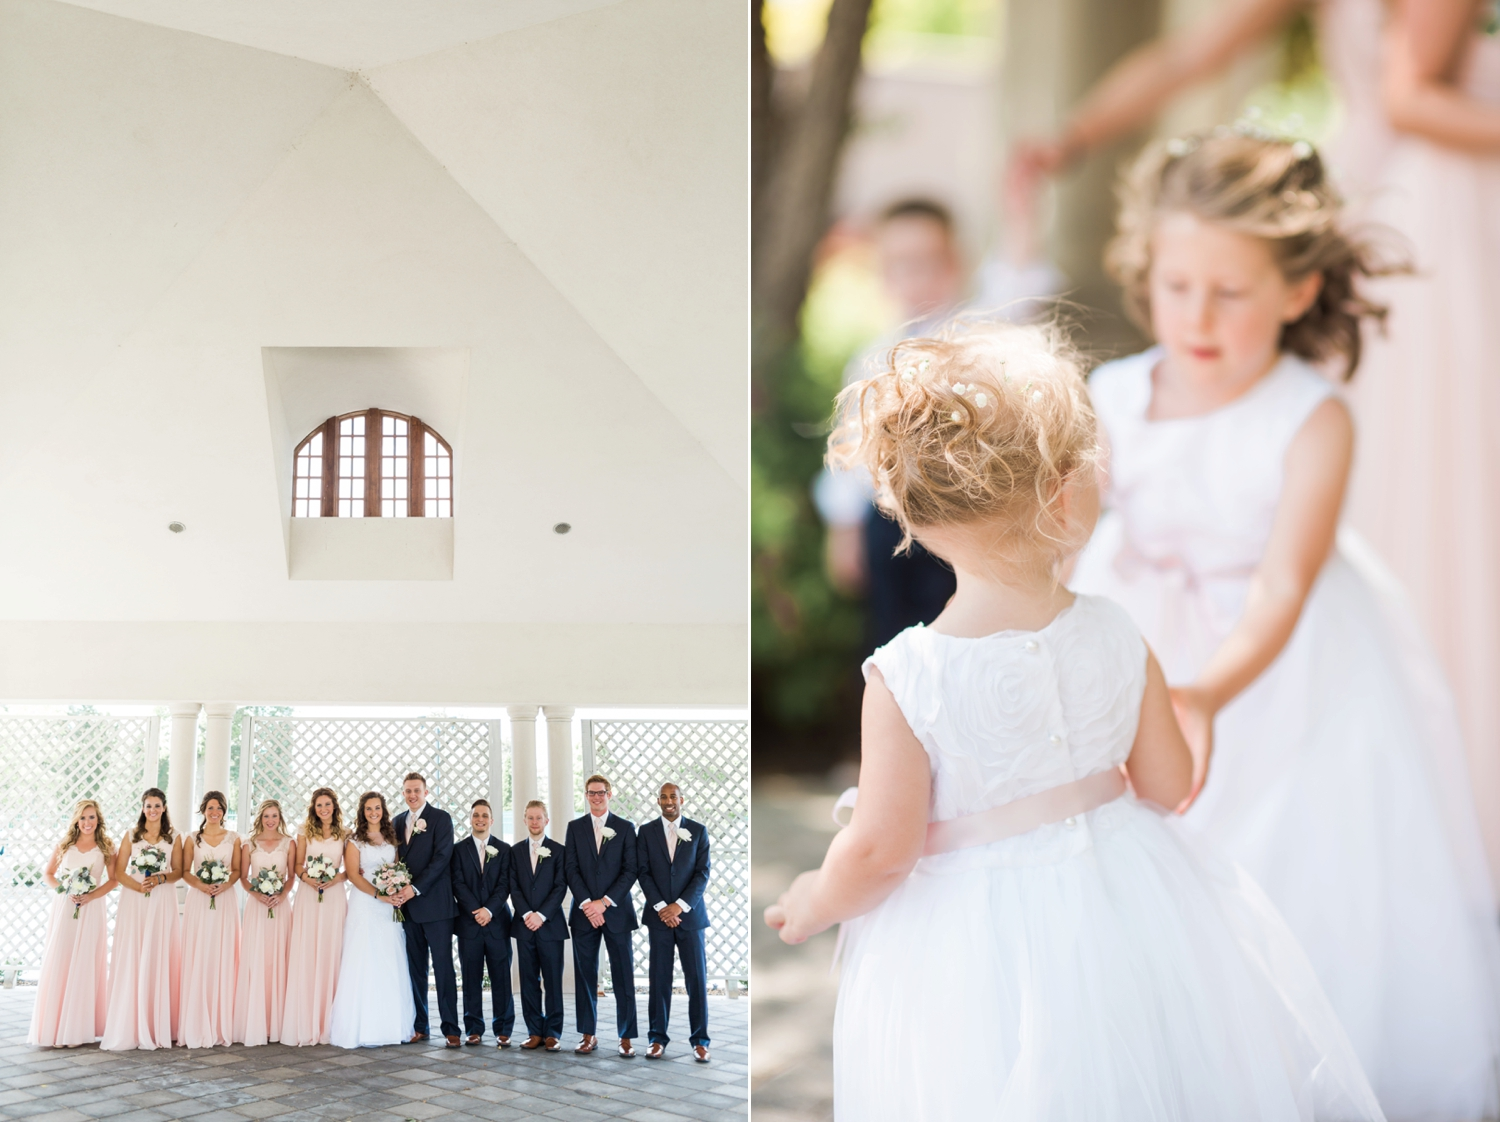 Community_Life_Center_Indianapolis_Indiana_Wedding_Photographer_Chloe_Luka_Photography_6912.jpg